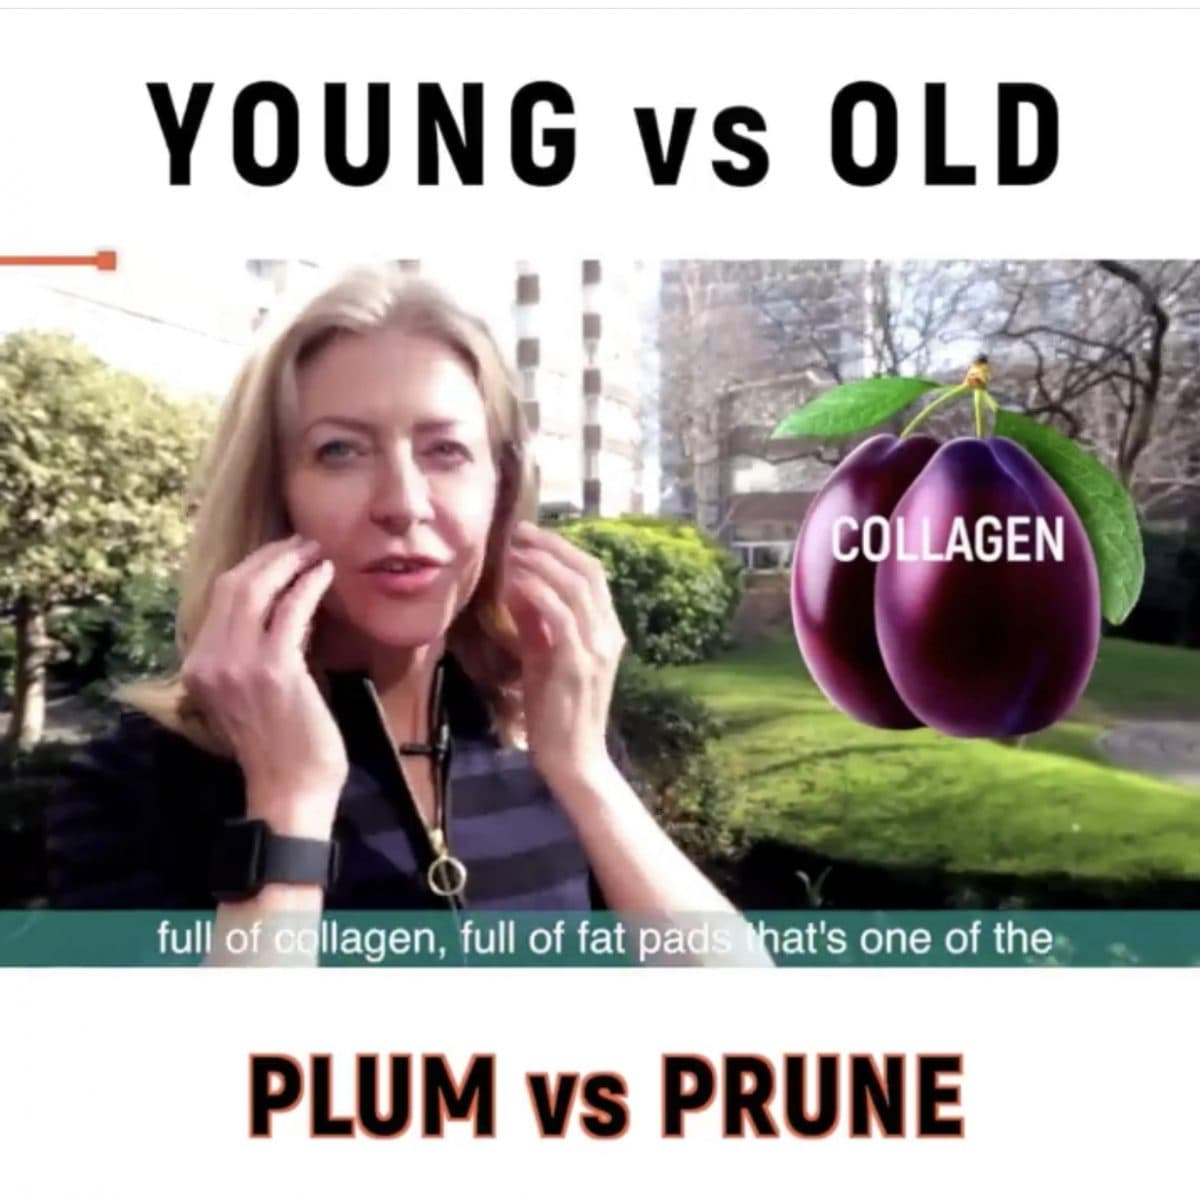 Why you want to be a plum (not a prune)